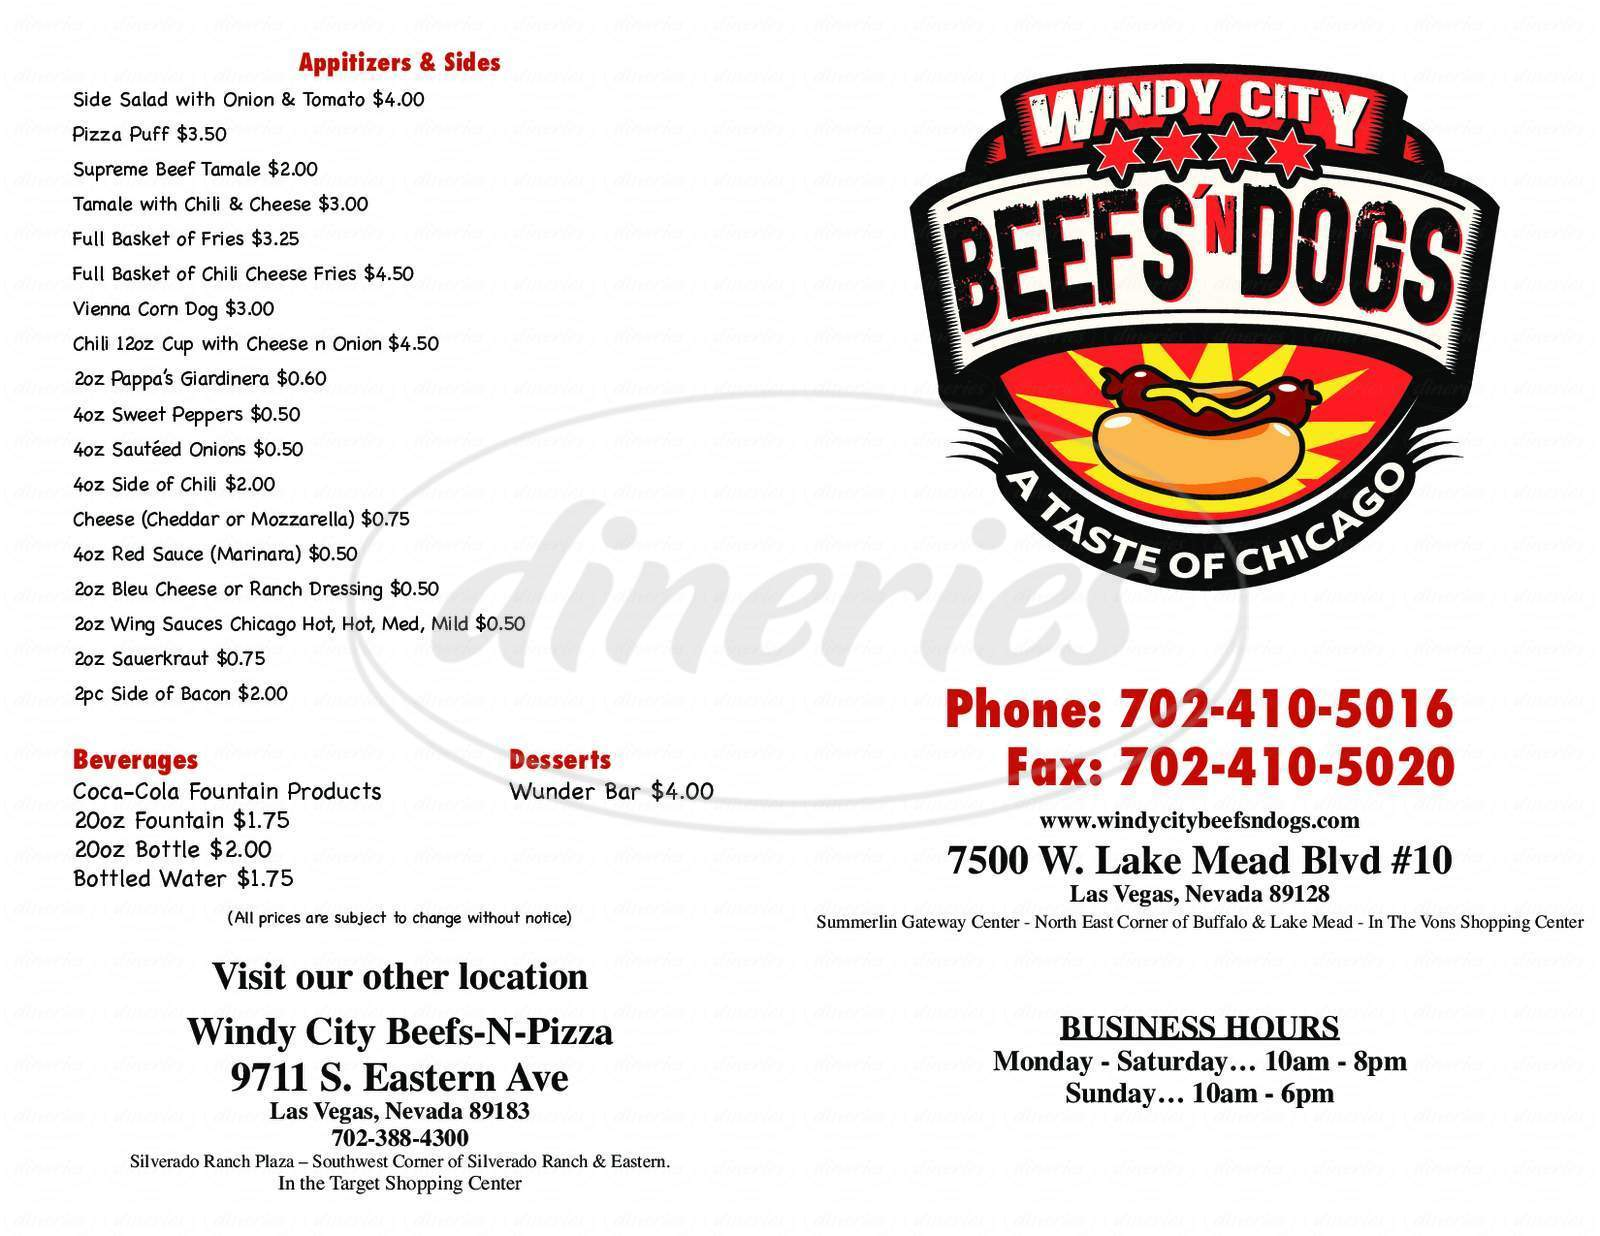 menu for Windy City Beefs-N-Dogs